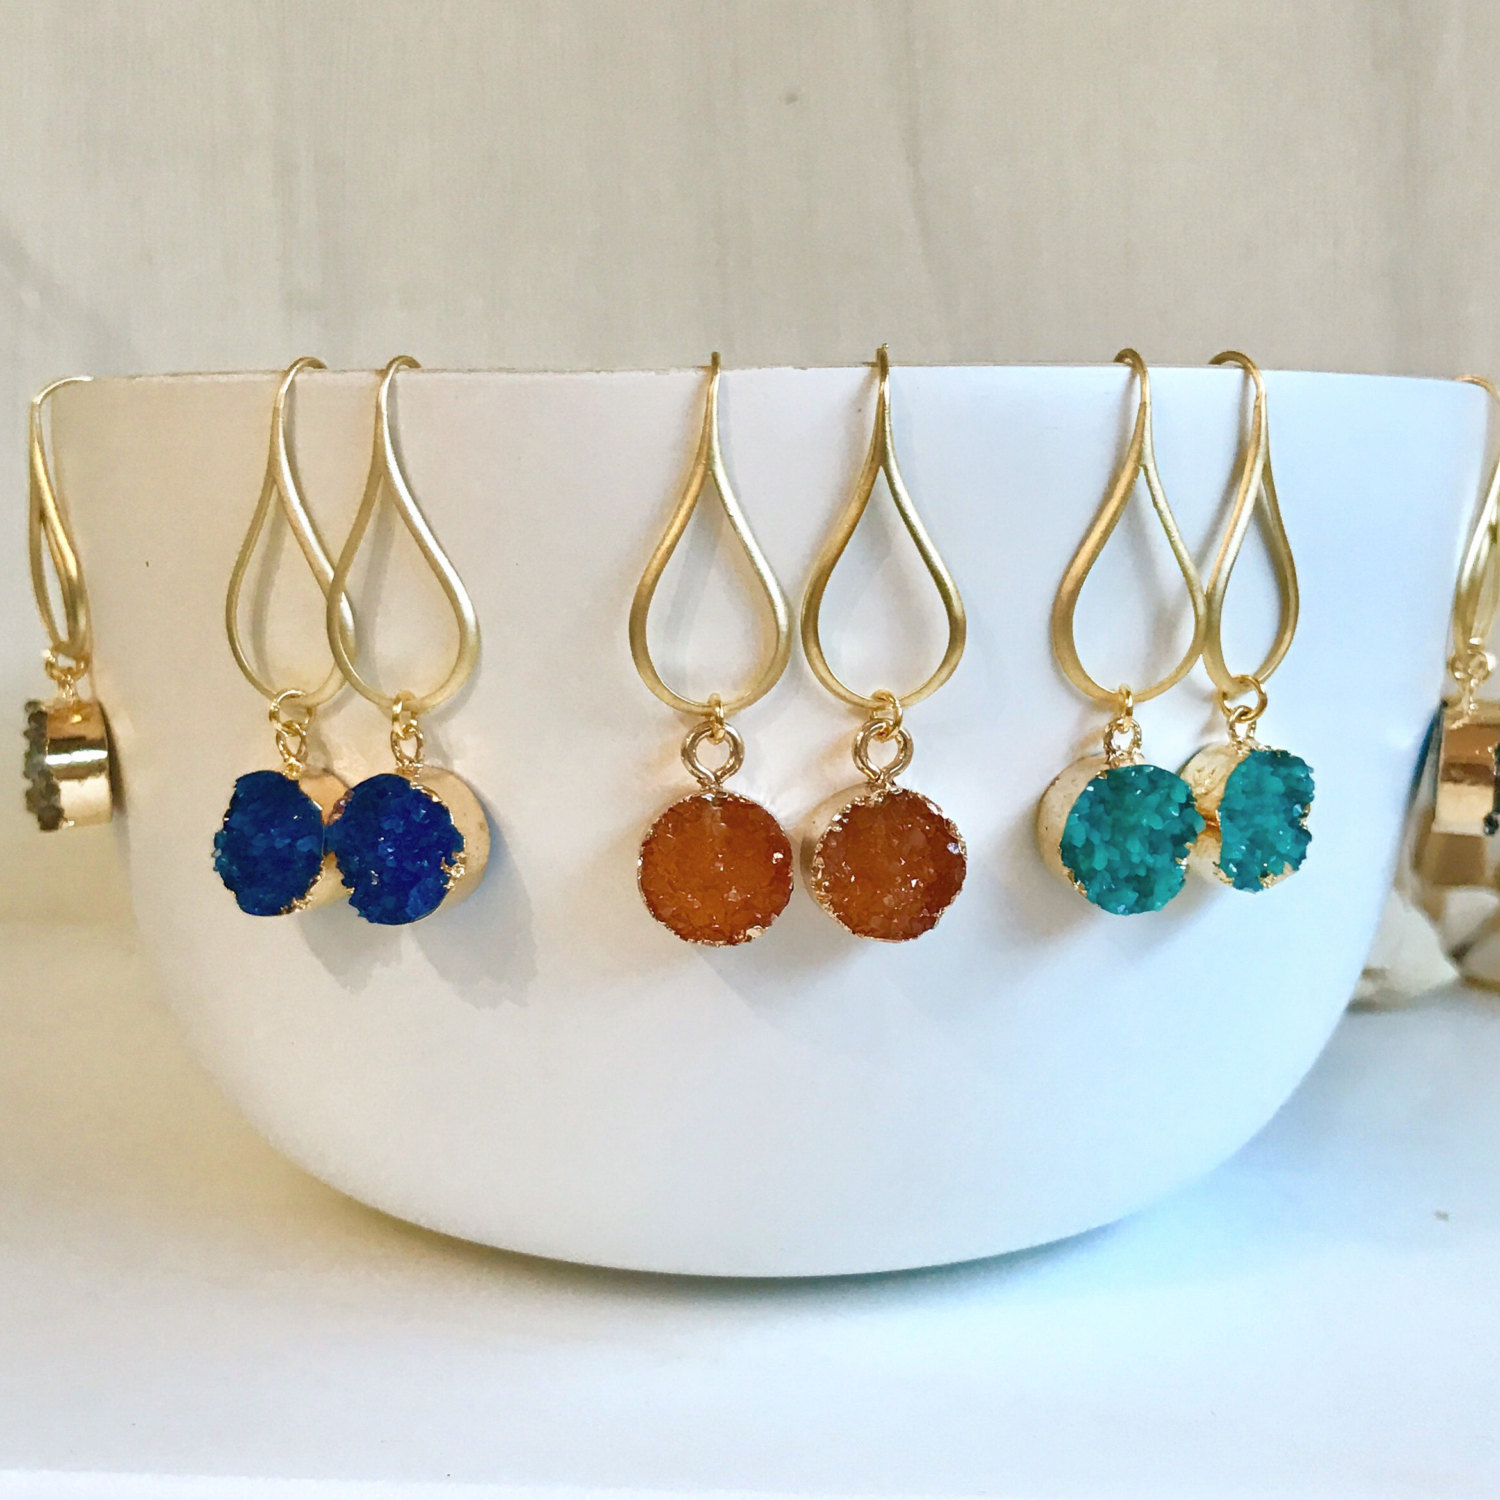 druzy earrings by Rustic Gem Jewelry | via Druzy Earrings Giveaway http://emmalinebride.com/2017-giveaway/druzy-earrings-giveaway/